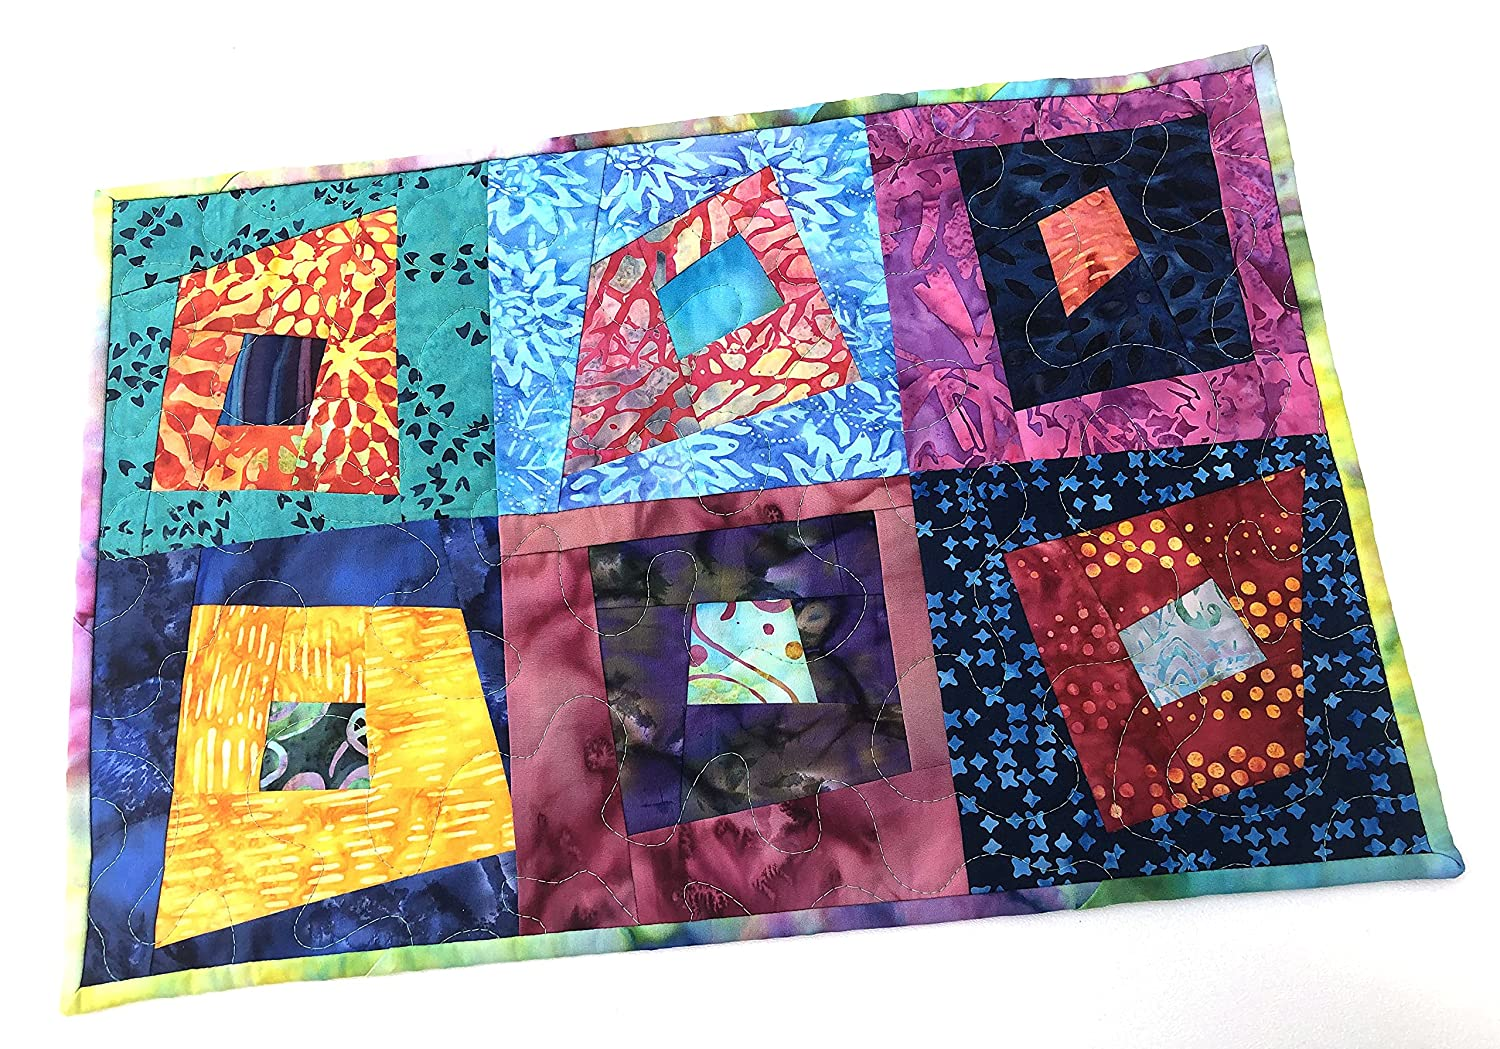 Abstract Quilted Fabric Patchwork Place Hanging Super sale period limited Cheap sale Wall Mat or